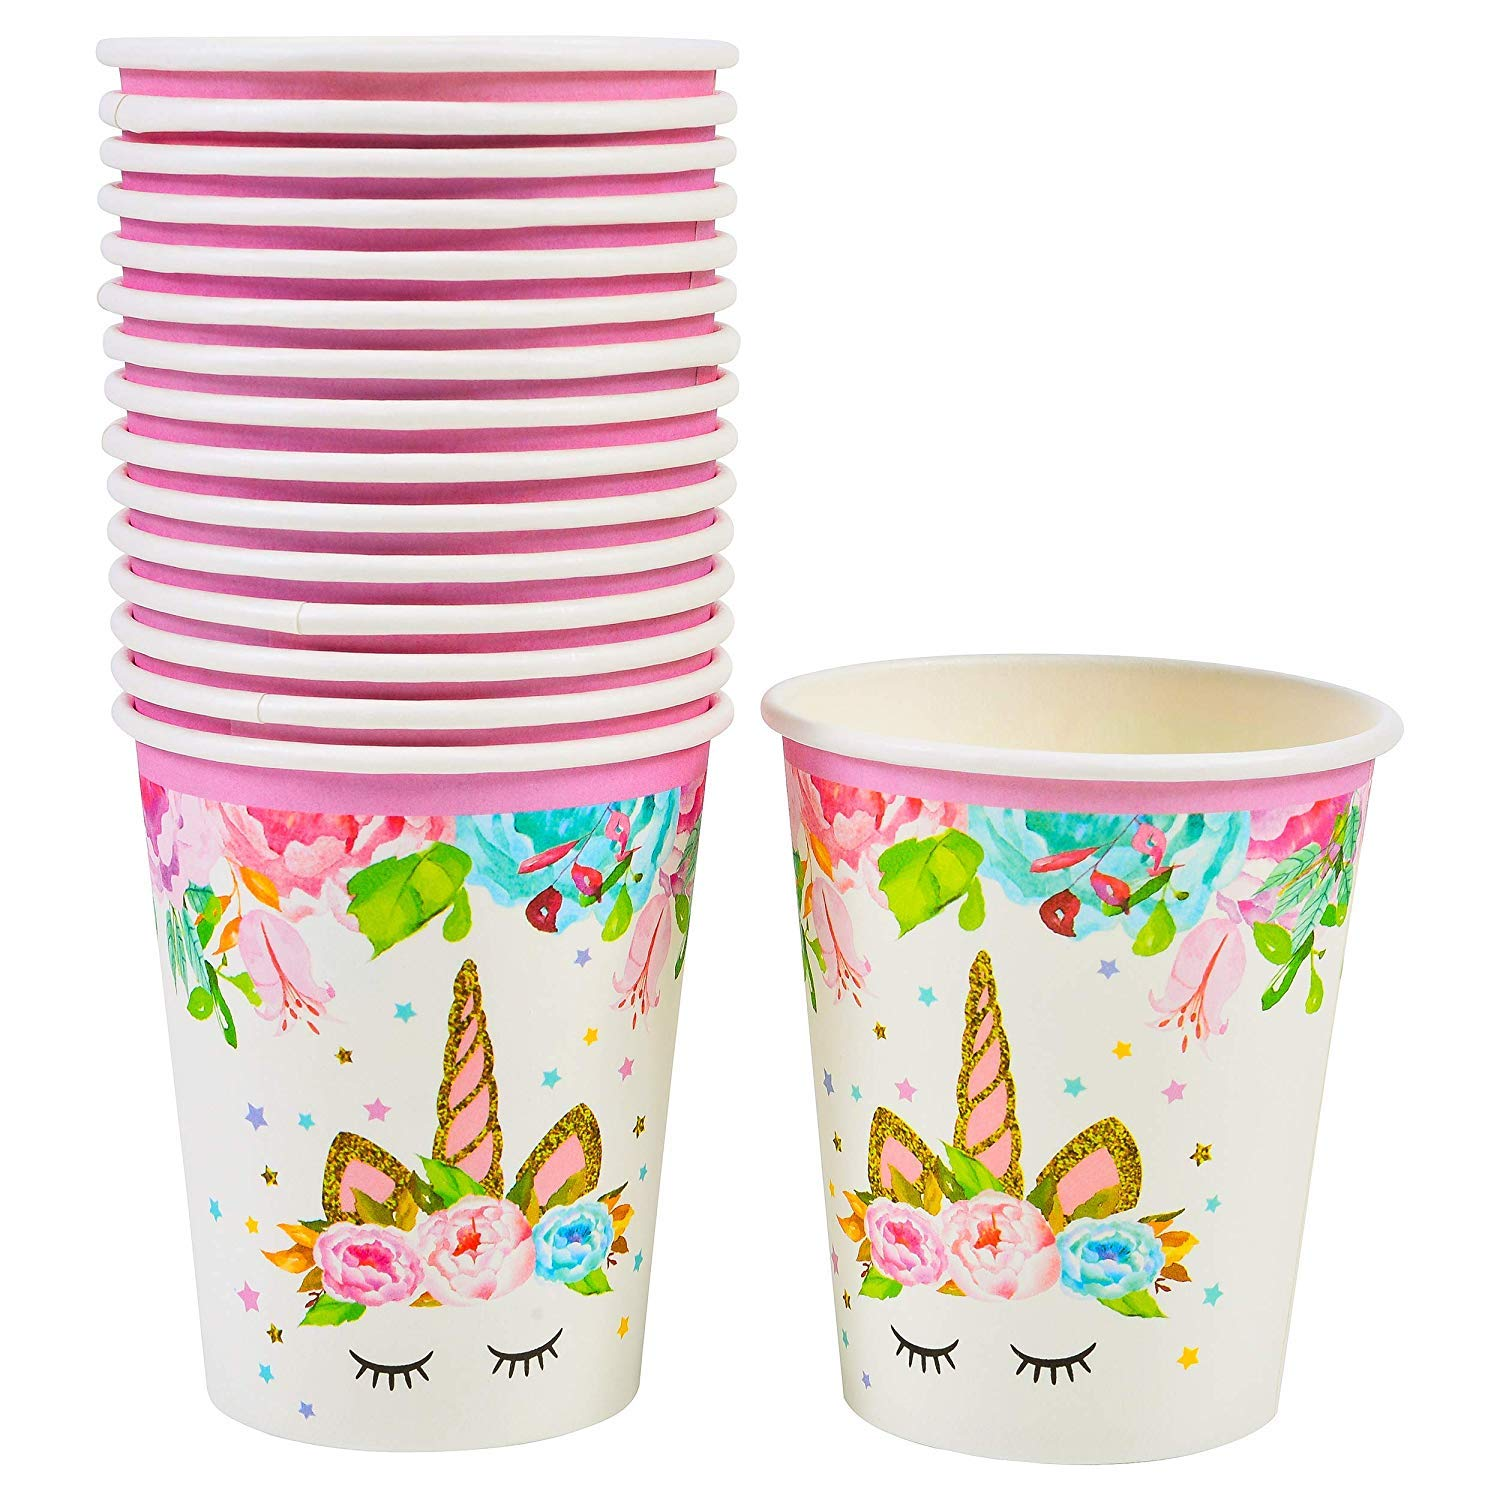 Disposable Set 16 FZR Legend Unicorn Paper Cups Unicorn Themed Party Supplies 9 oz Magical Unicorn Birthday Party Decorations for Girls and Baby Shower